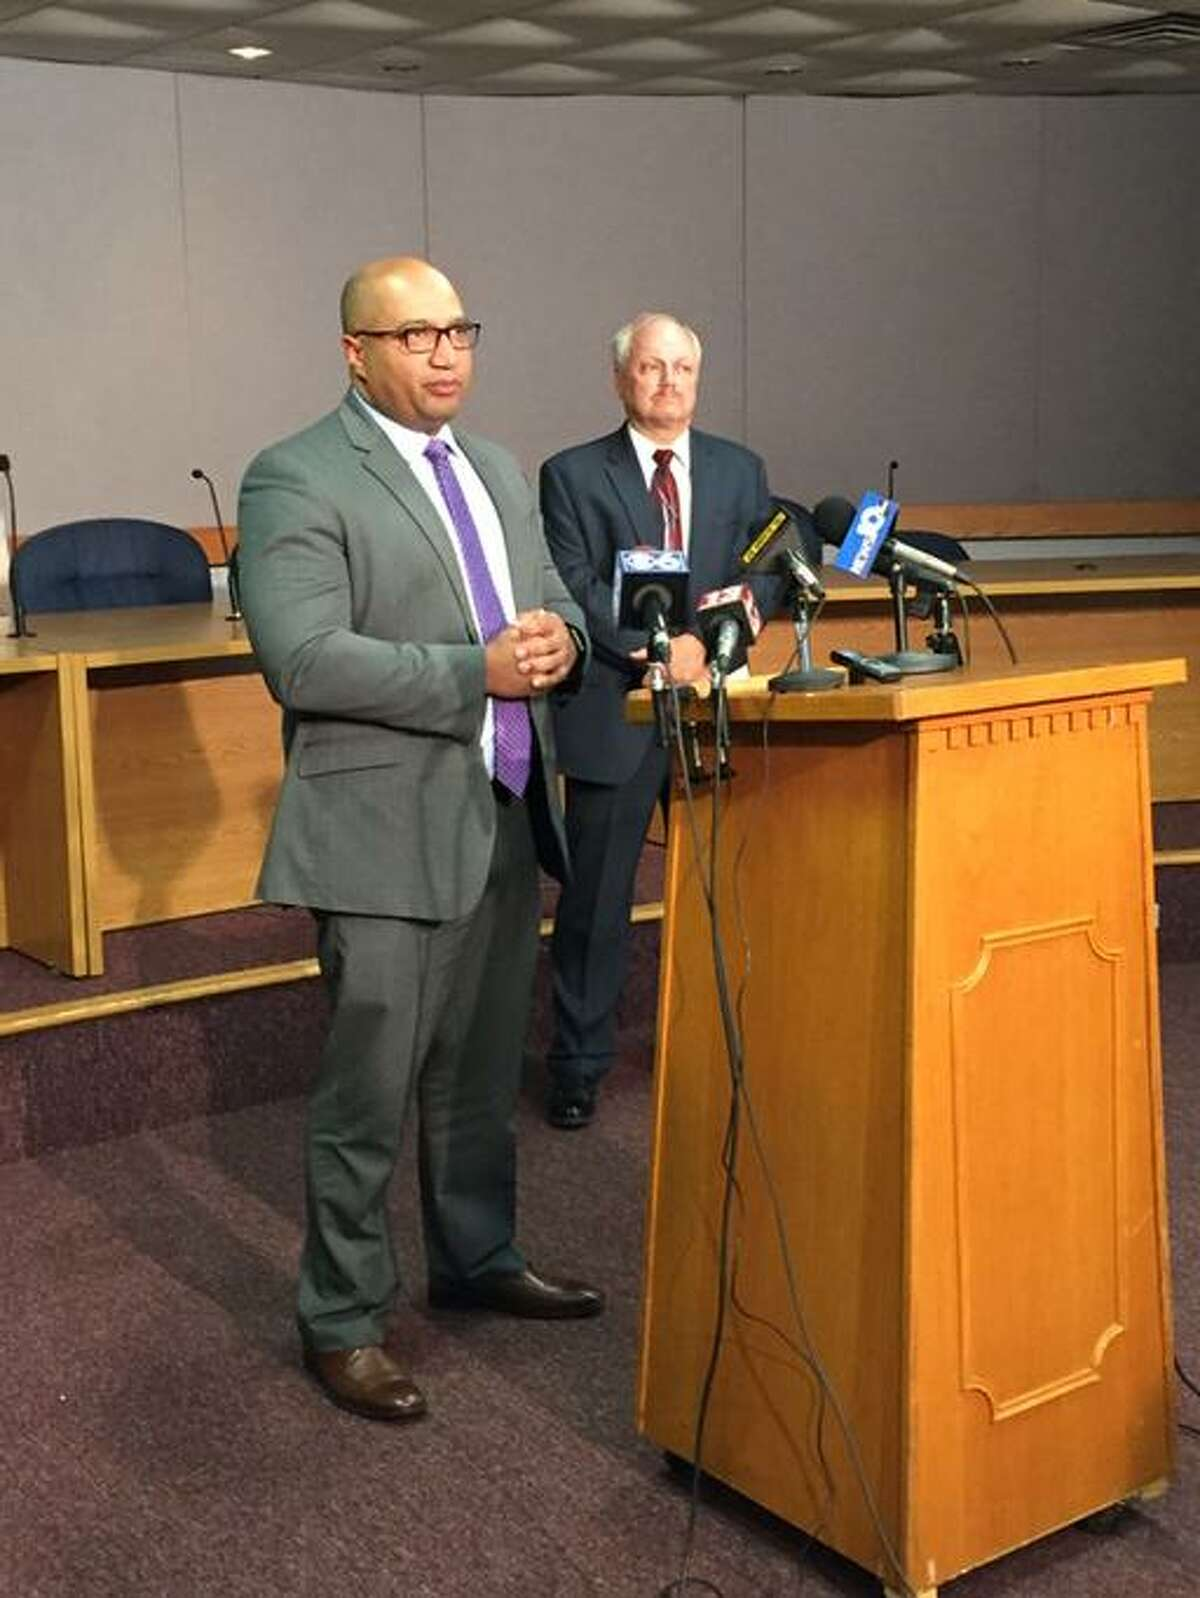 Albany County District Attorney David Soares said investigators have no new leads or breaks in the Guilderland quadruple homicide on Oct. 8, 2014. Officiials appealed for public help. (Paul Grondahl/Times Union)